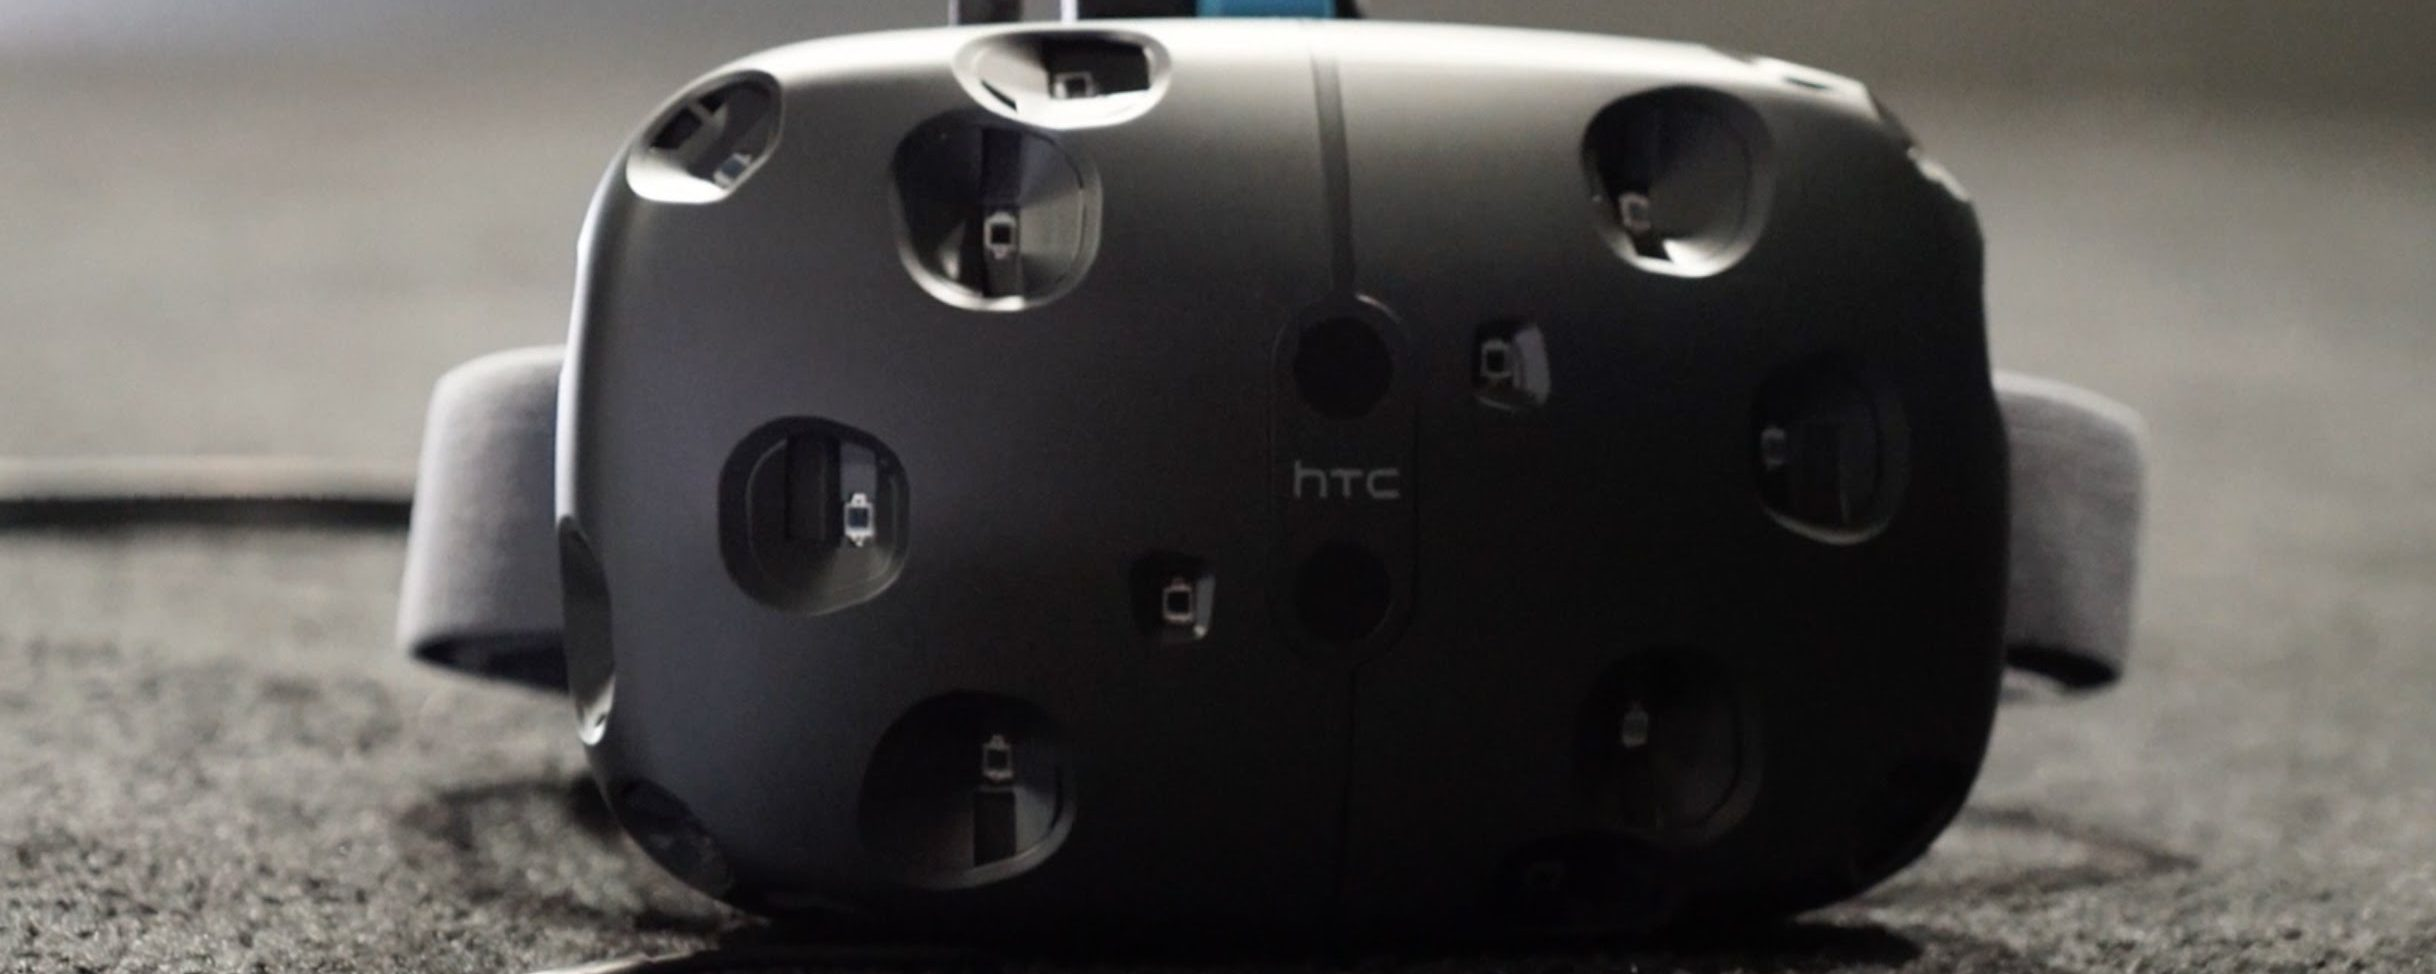 Launches of Oculus Rift, HTC Vive Hit Minor Bumps